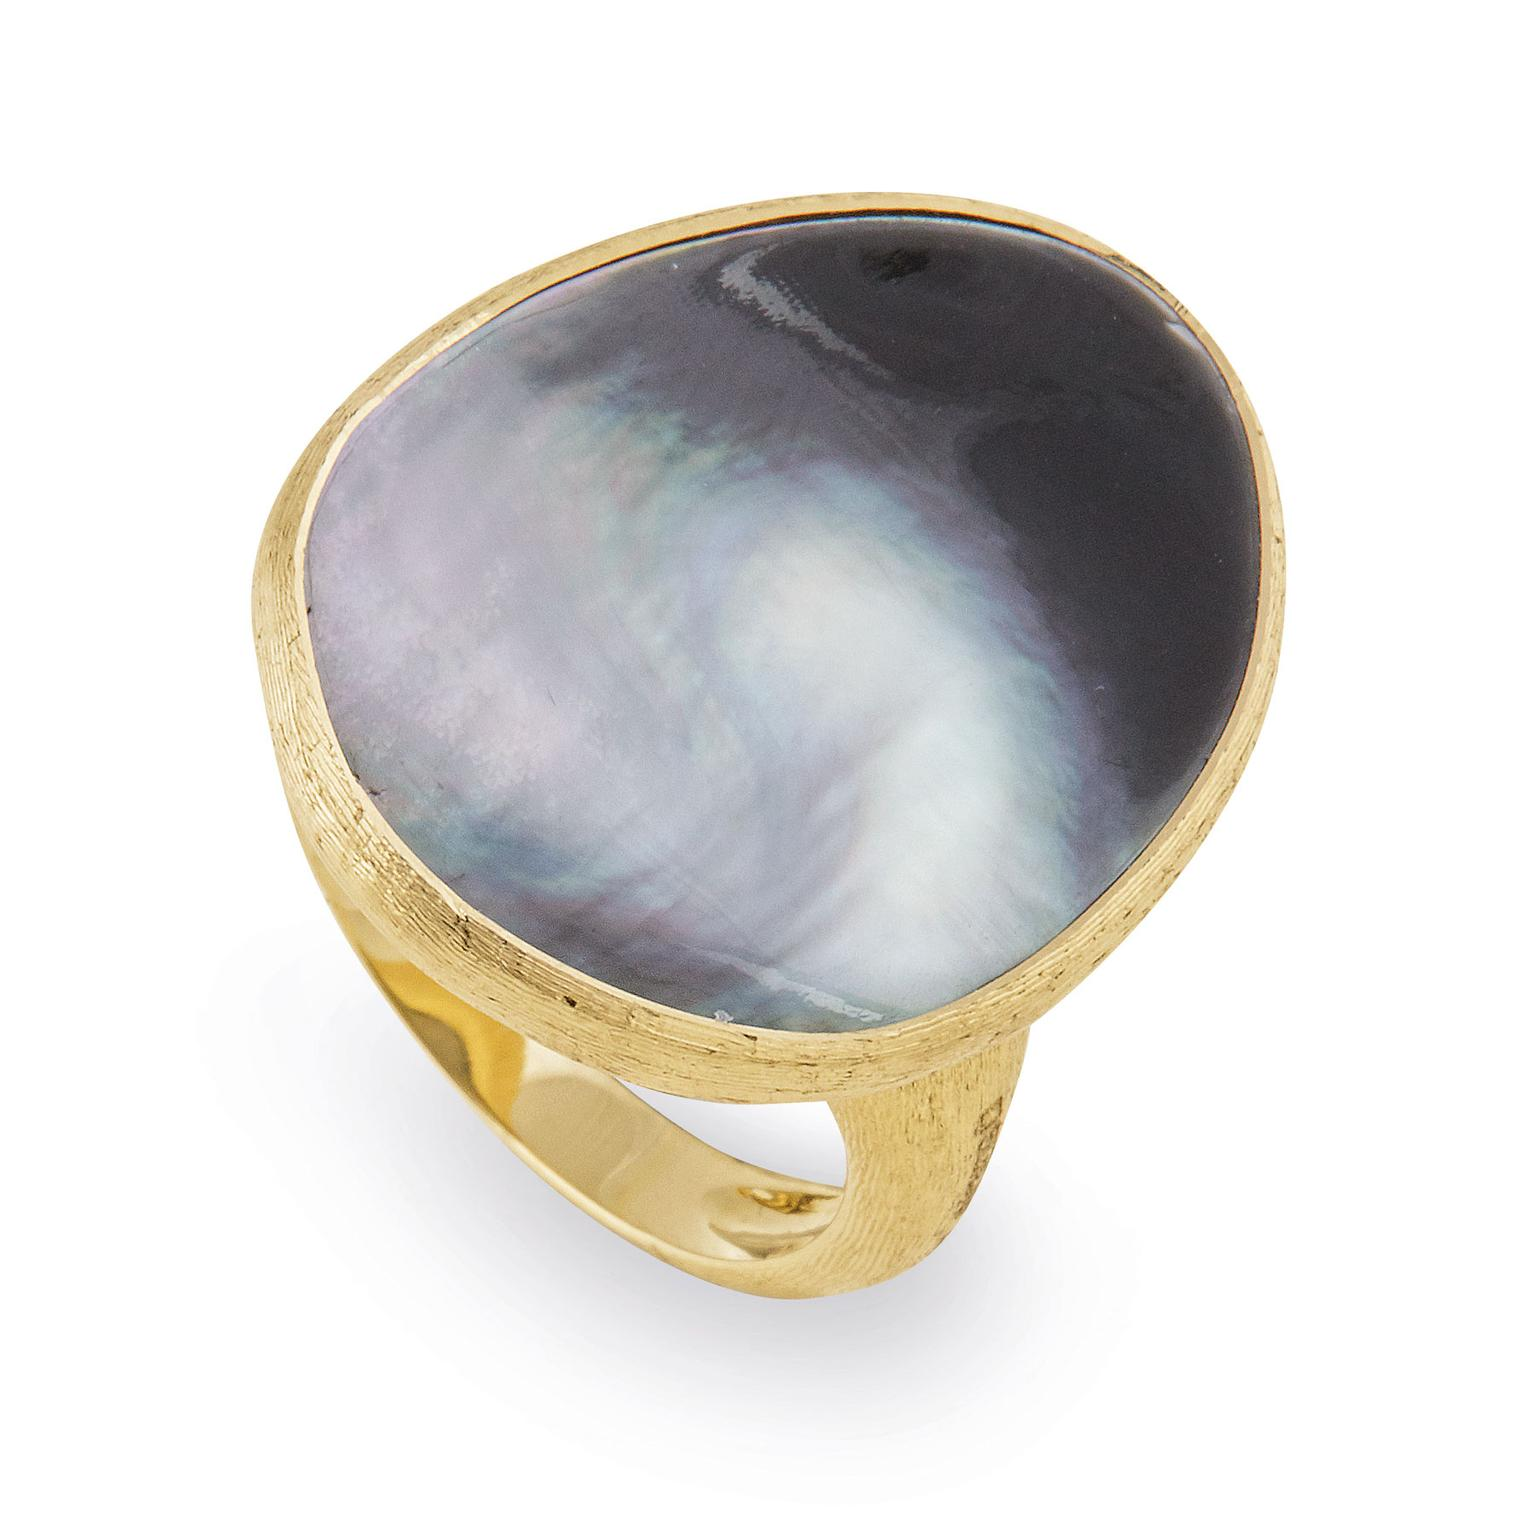 Marco Bicego Lunaria grey mother-of-pearl ring